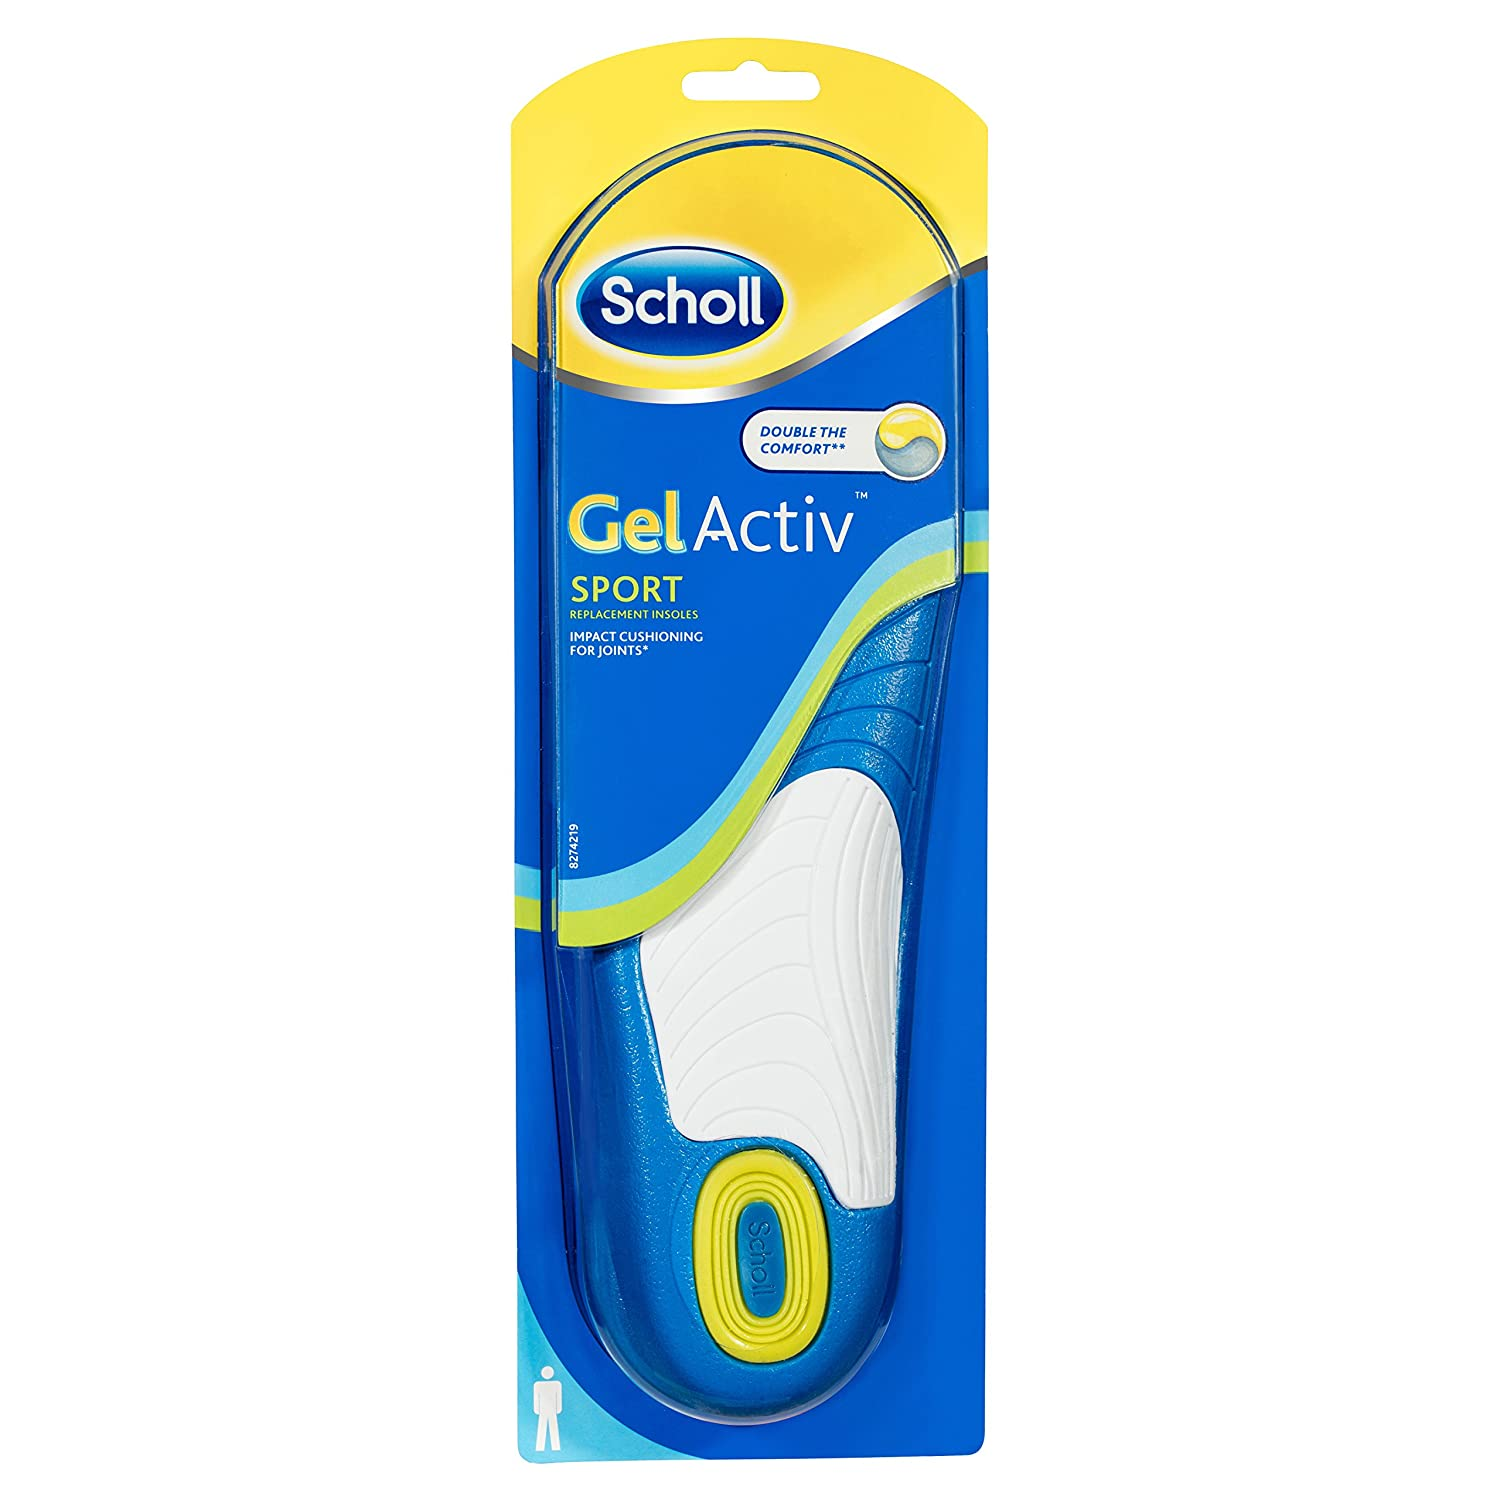 Folkekære Scholl Men's Gel Activ Sport Insoles, UK Size 7 to 12: Amazon.co XH-88